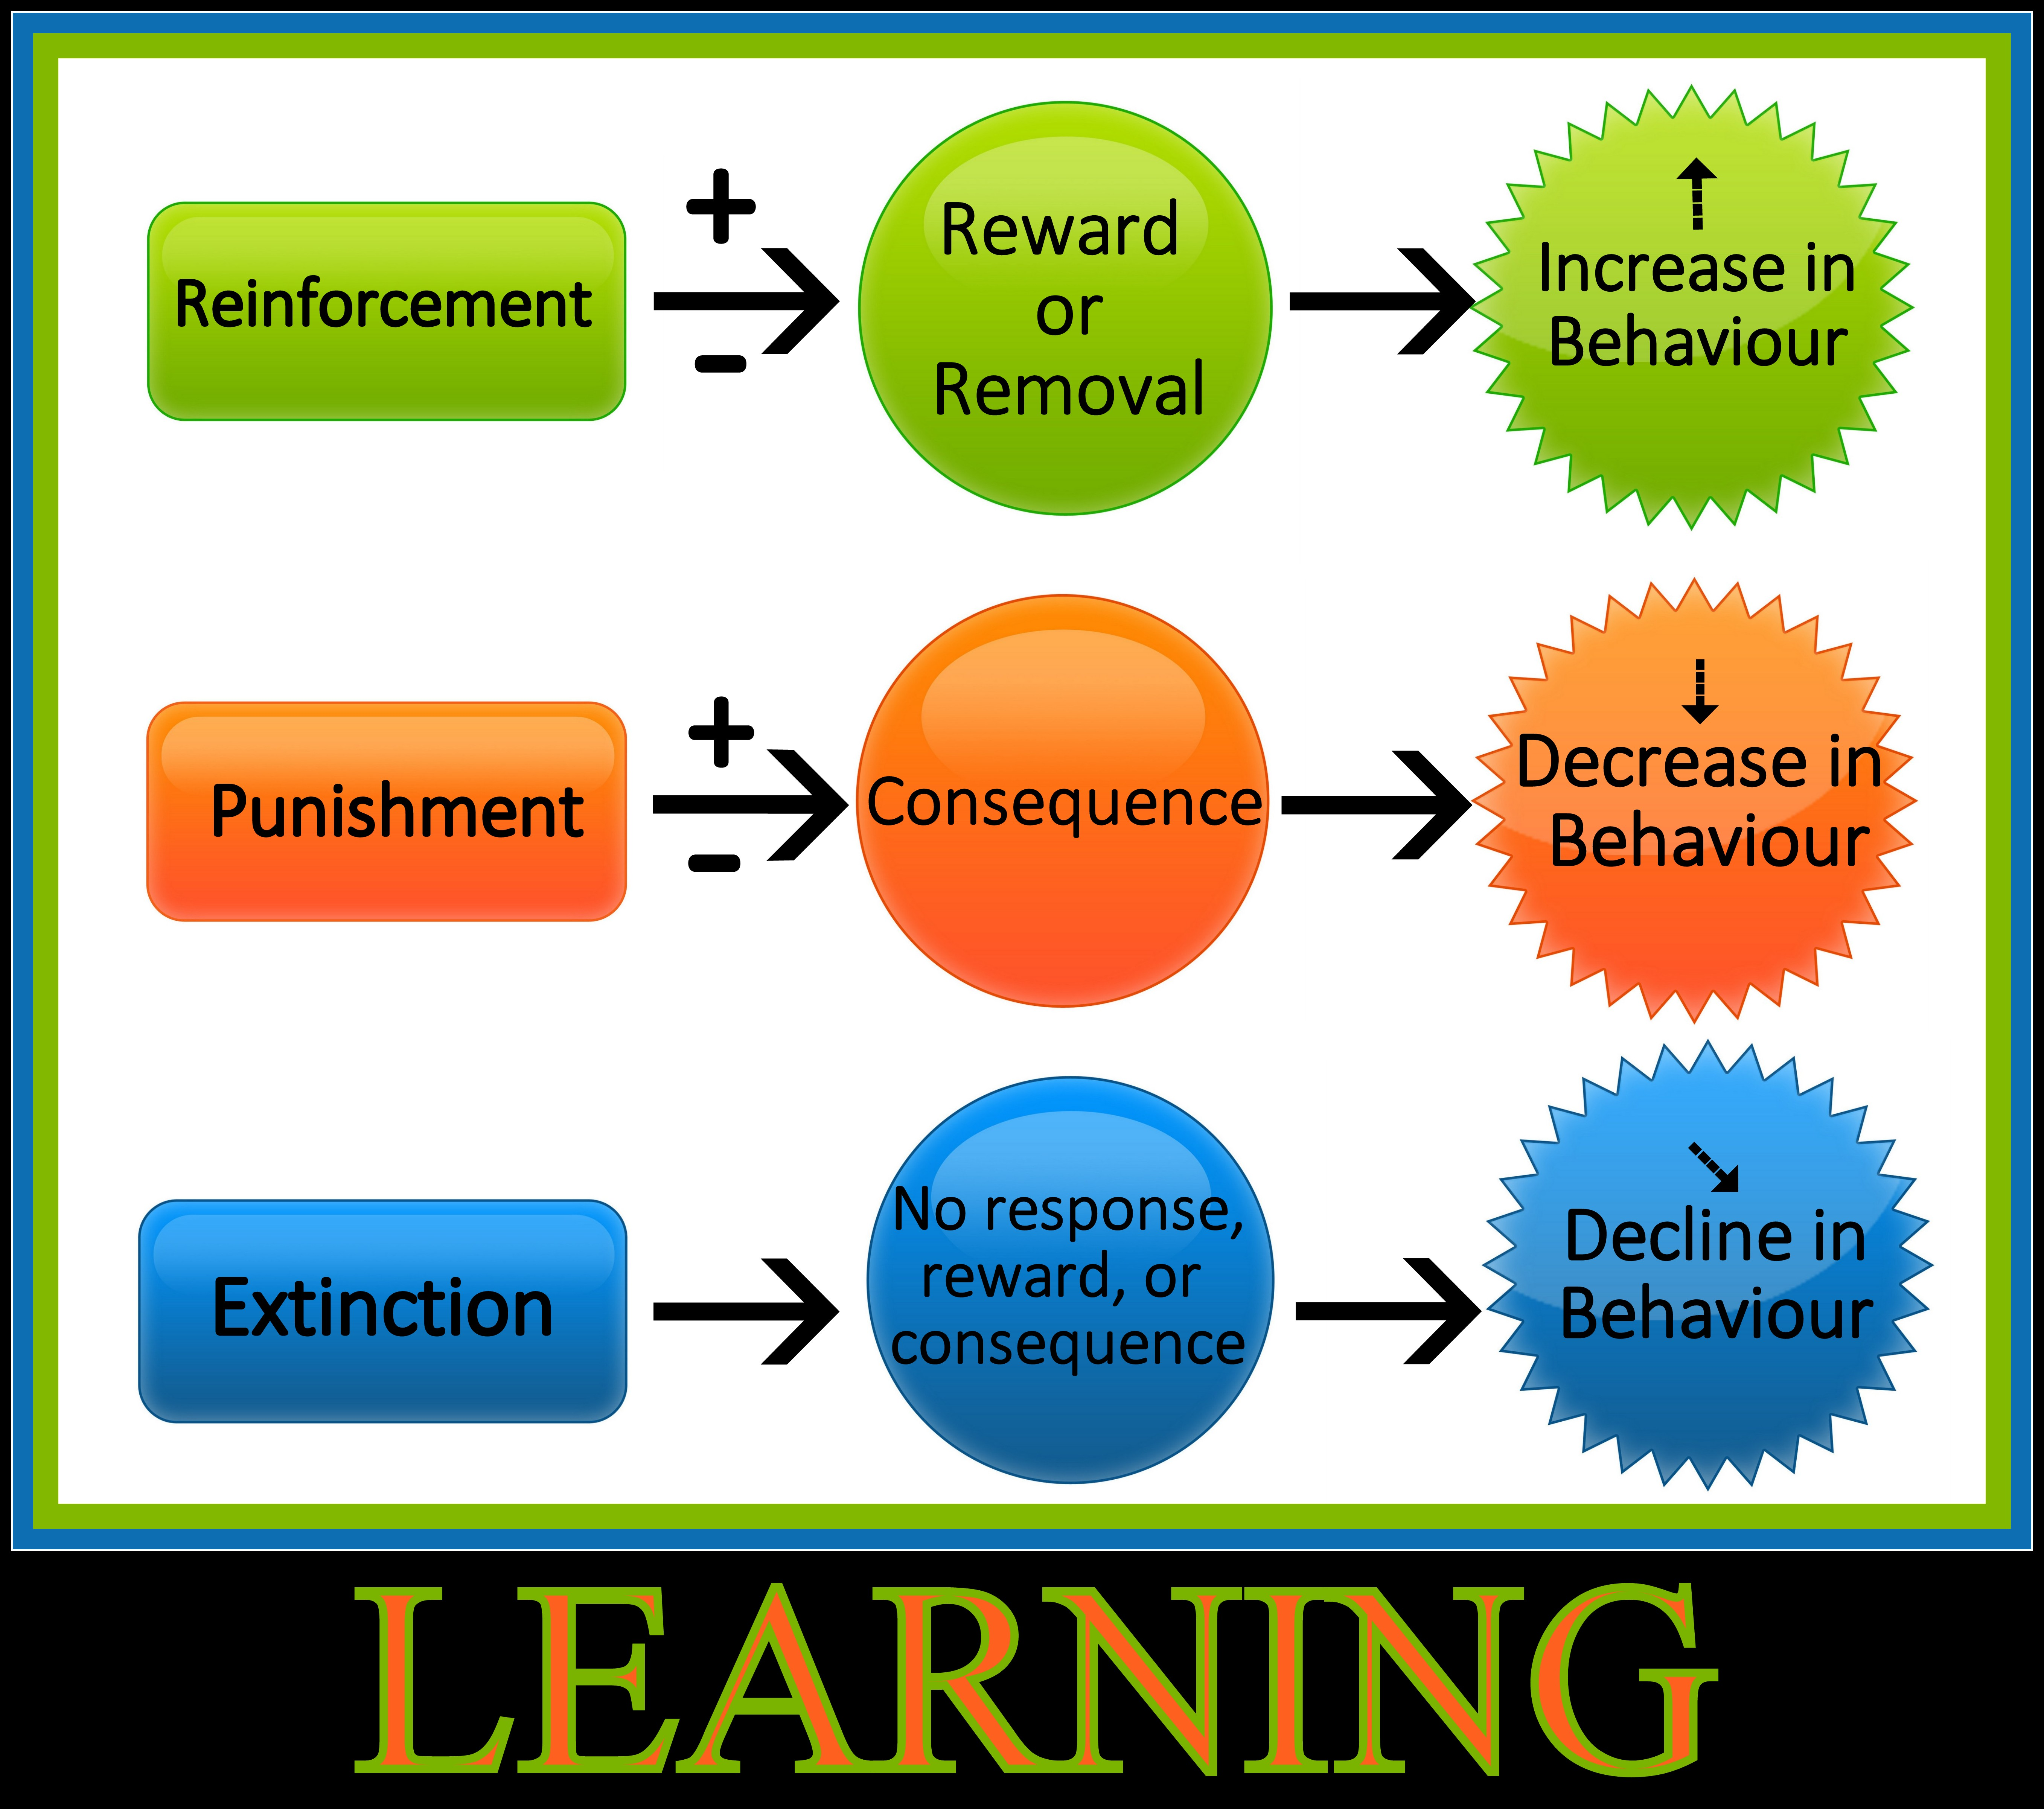 positive reinforcement vs punishment in enhancing learning Reinforcement vs punishment the difference between positive and negative reinforcement in behavioral psychology, a reinforcement is the introduction of a favorable condition that will make a desired negative reinforcement remove aversive enhance desired positive punishment add.